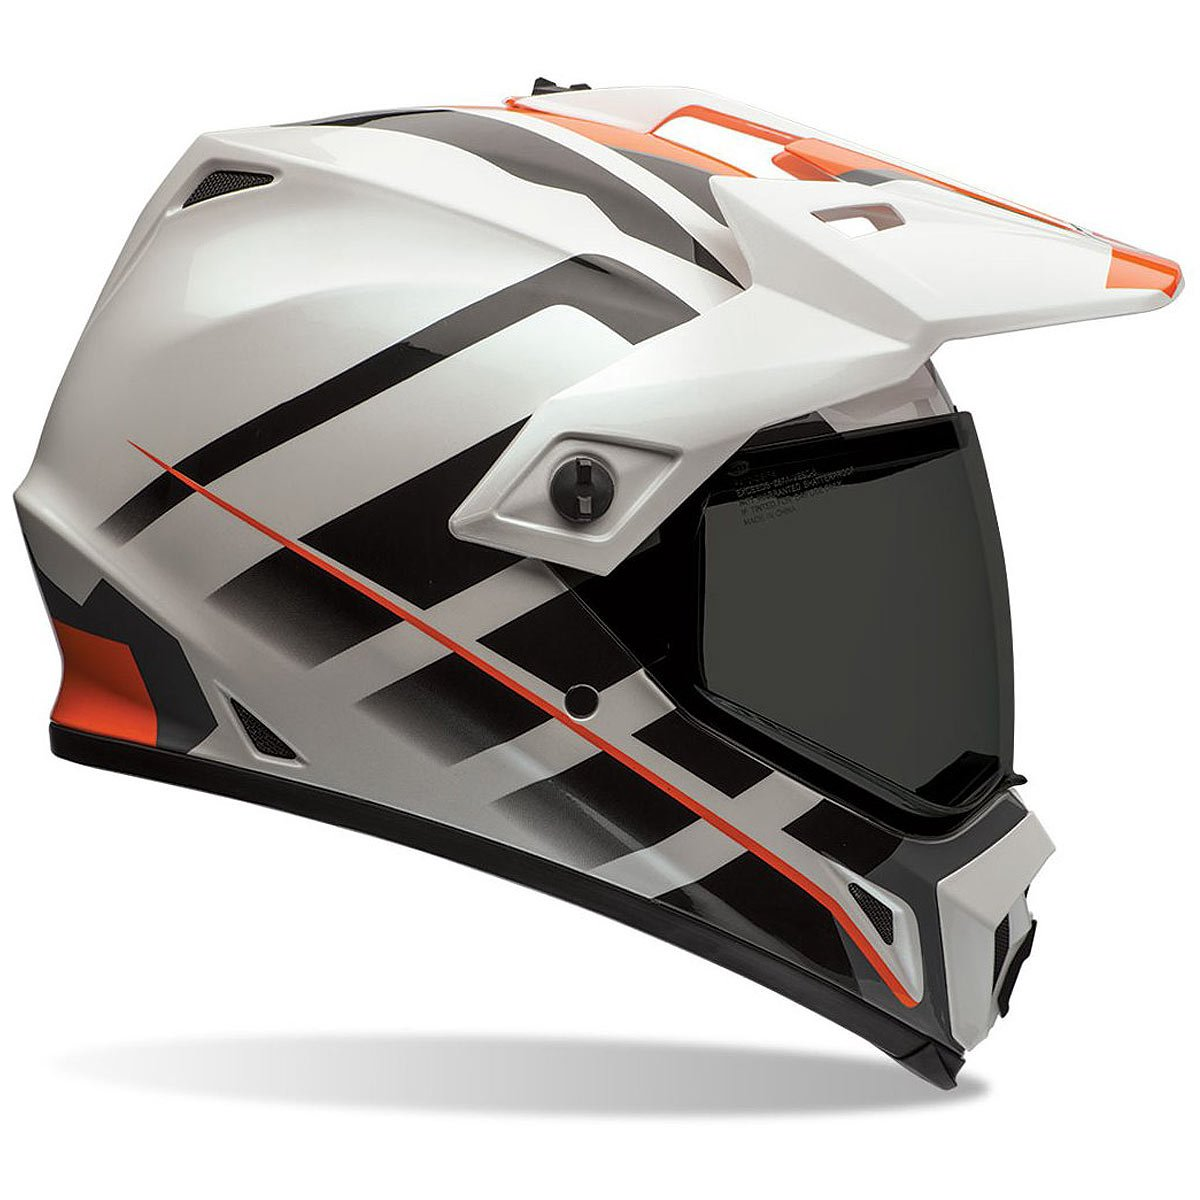 Bell Dual Sport Helmet >> Amazon Com Bell Unisex Adult Off Road Helmet Raid Orange White